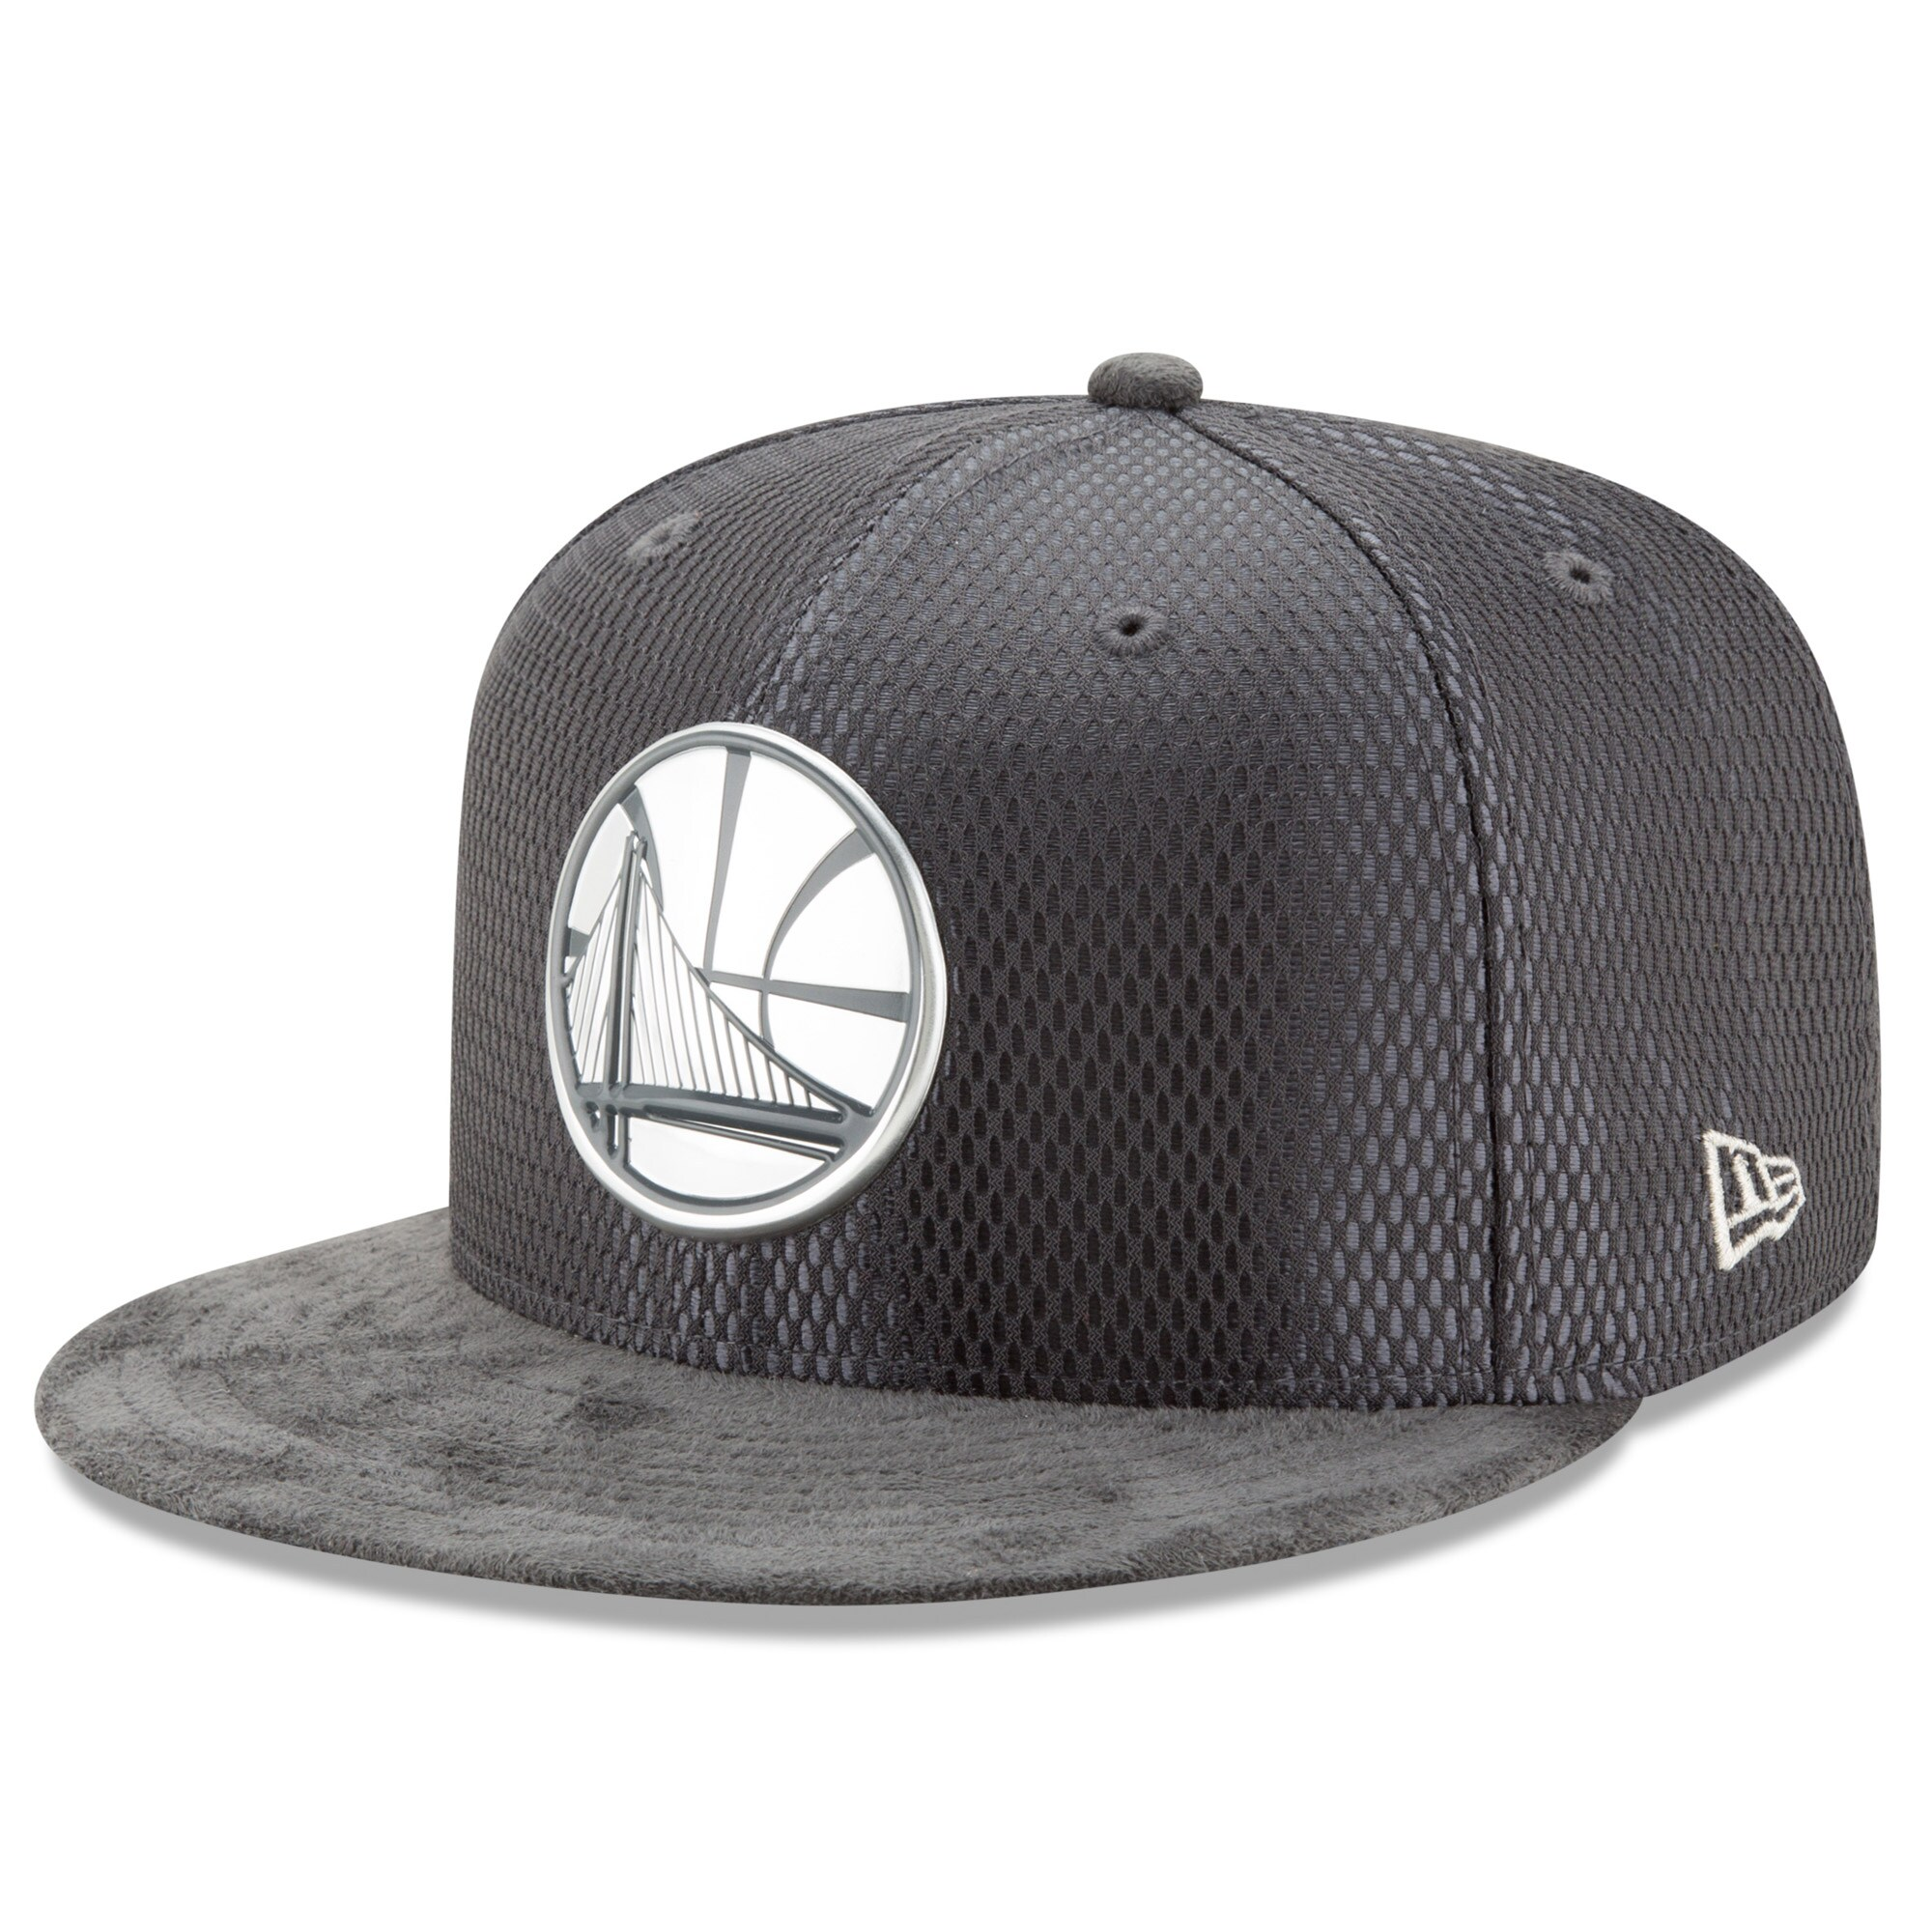 Golden State Warriors New Era Draft Silver Logo 59FIFTY Fitted Hat - Graphite